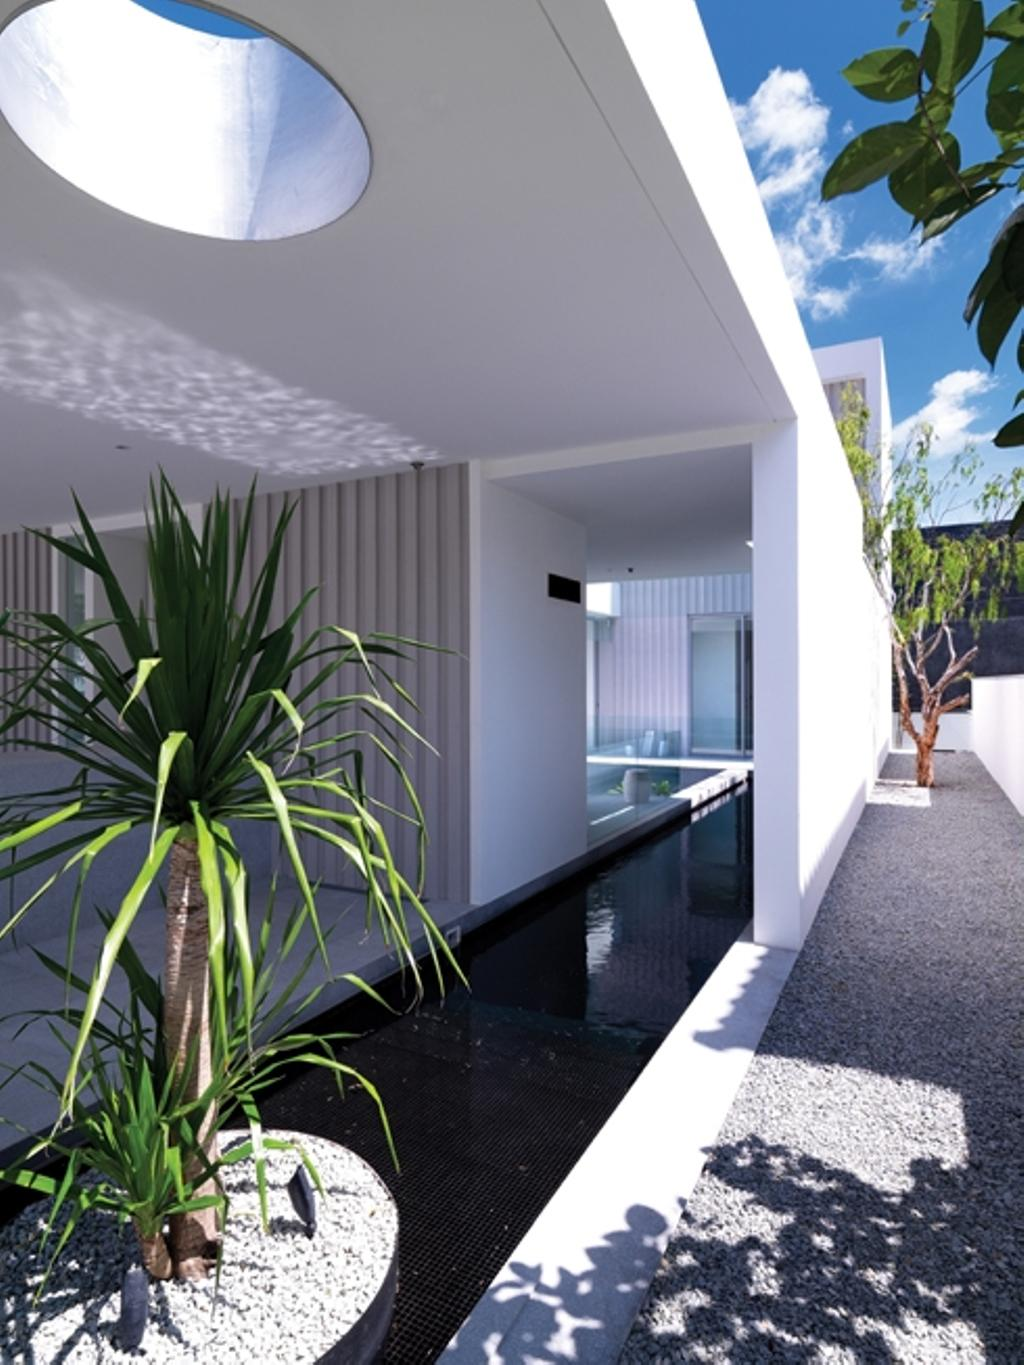 Modern, Landed, Ontario, Architect, Ministry of Design, White Walls, White Ceiling, Planted Trees, Pebbles Path, Small Pond, Building, House, Housing, Villa